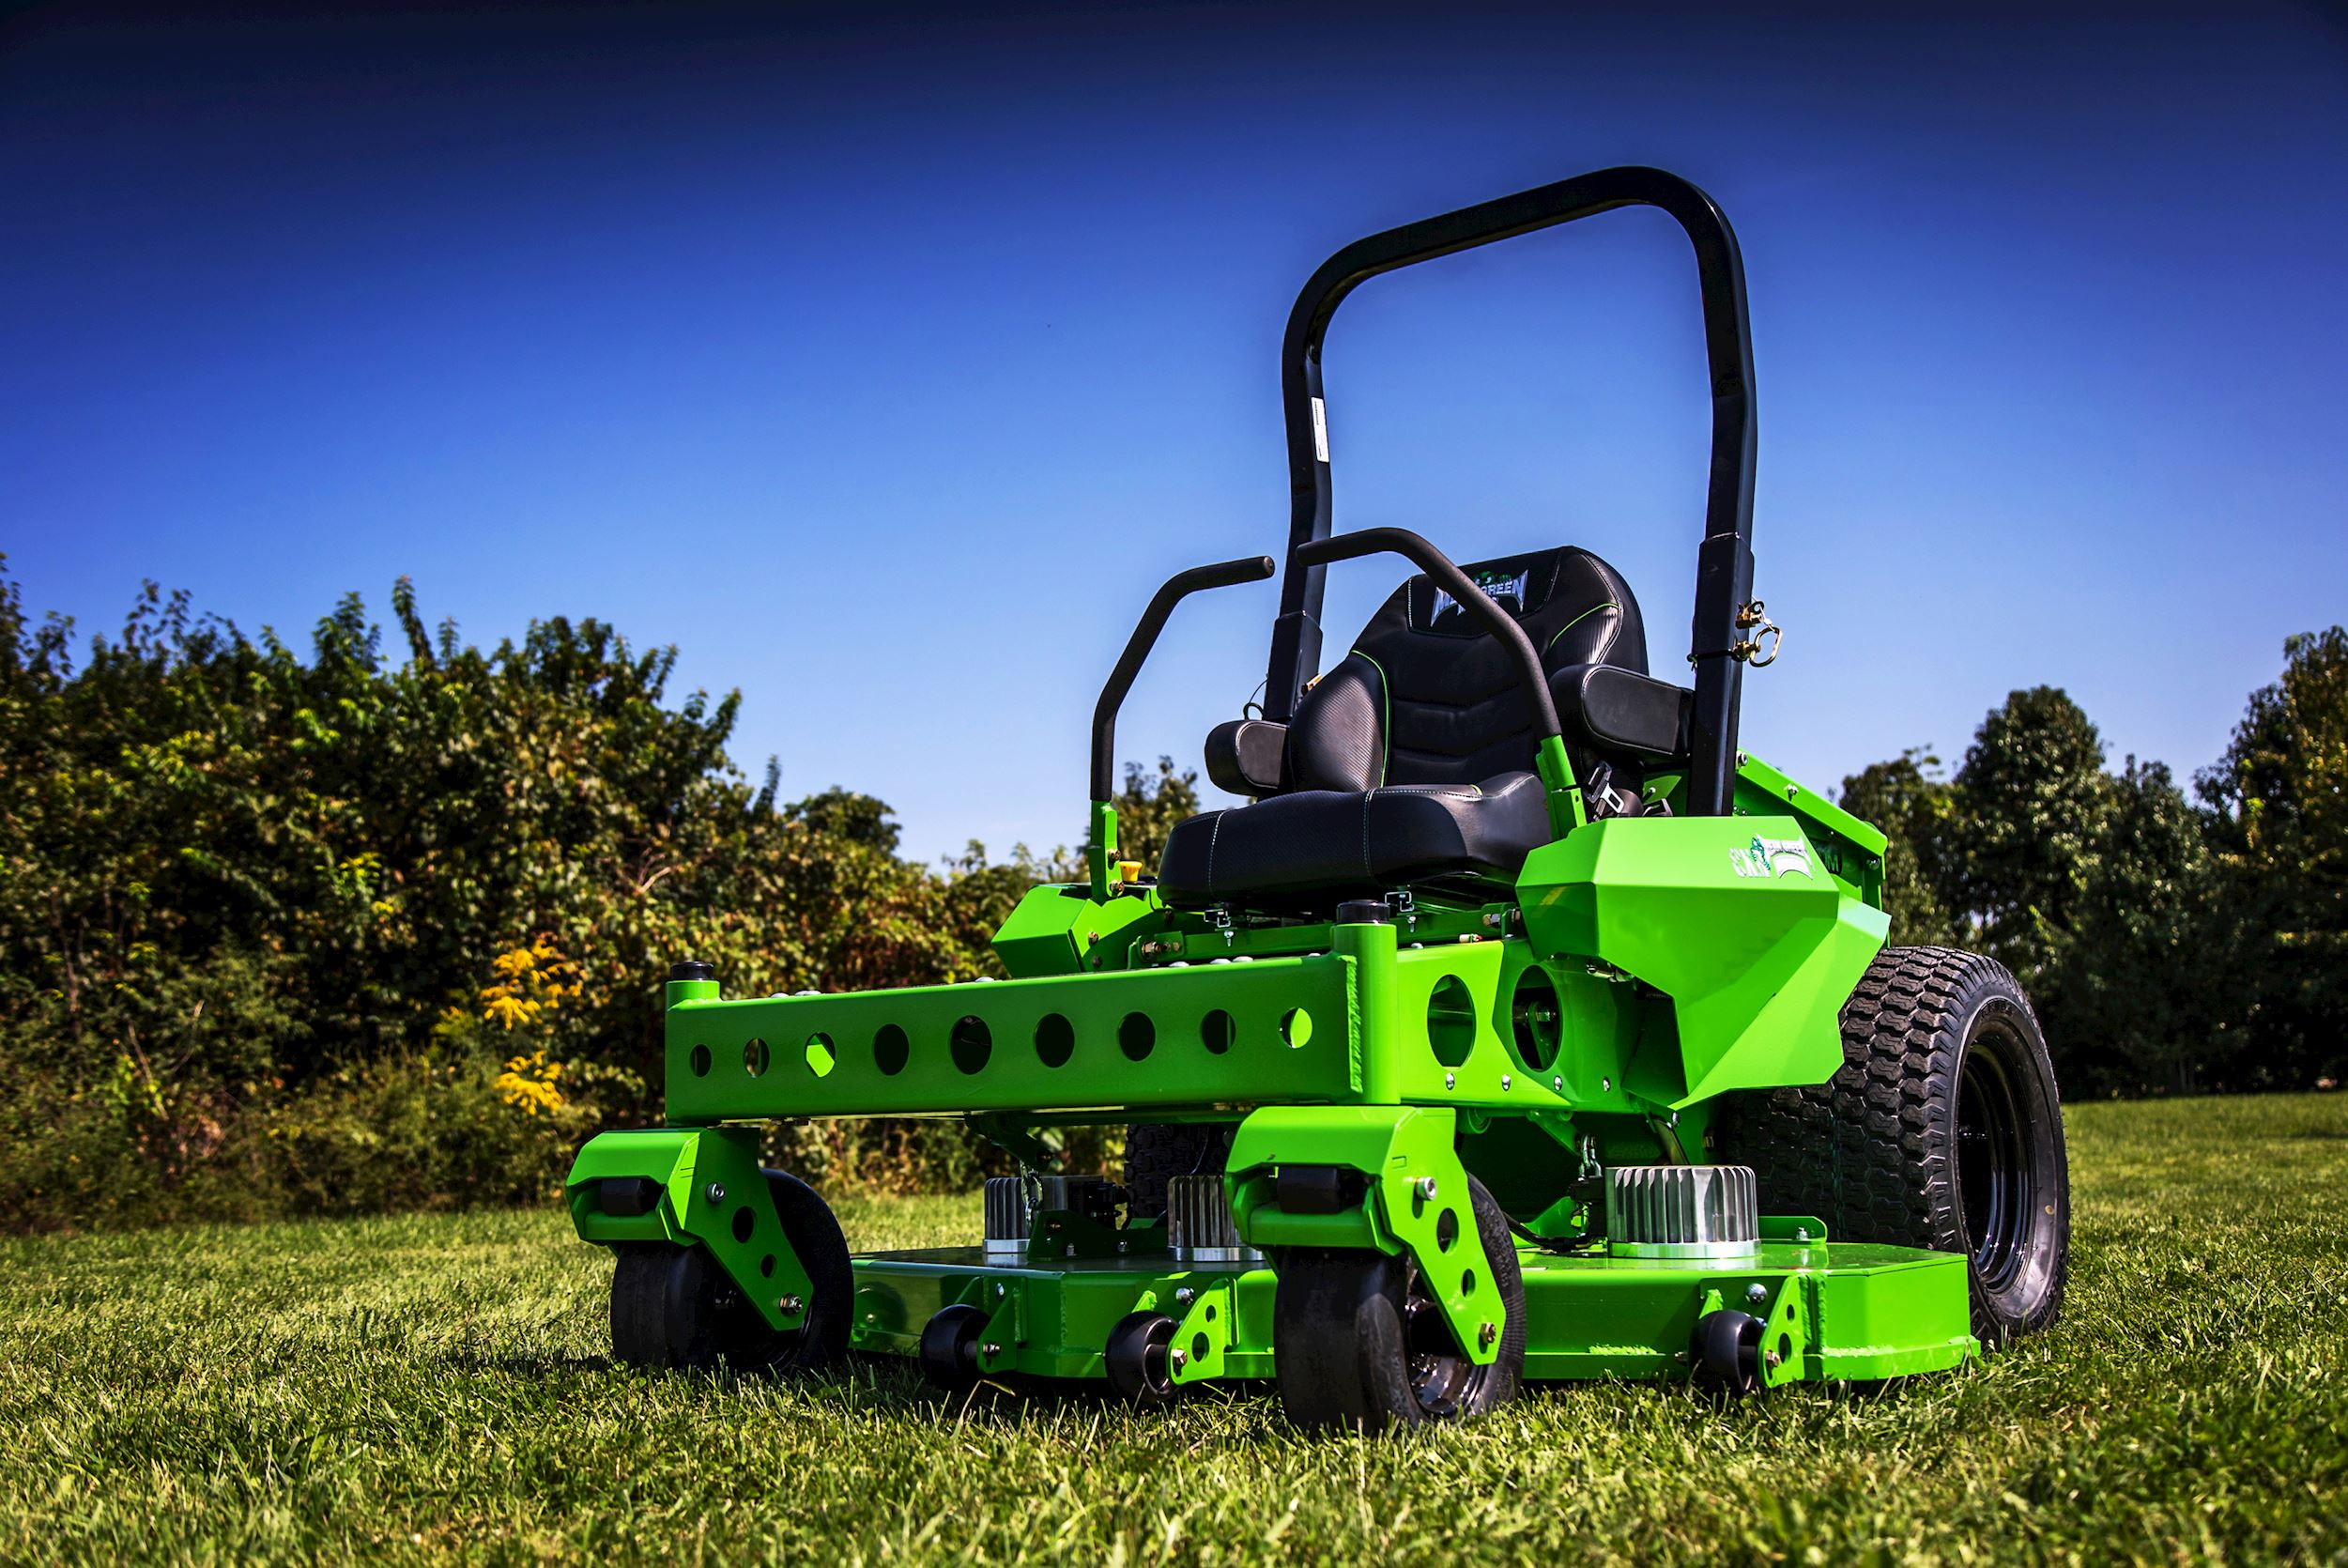 Could Electric Mowers Change the Way We Think About Golf Course Maintenance?